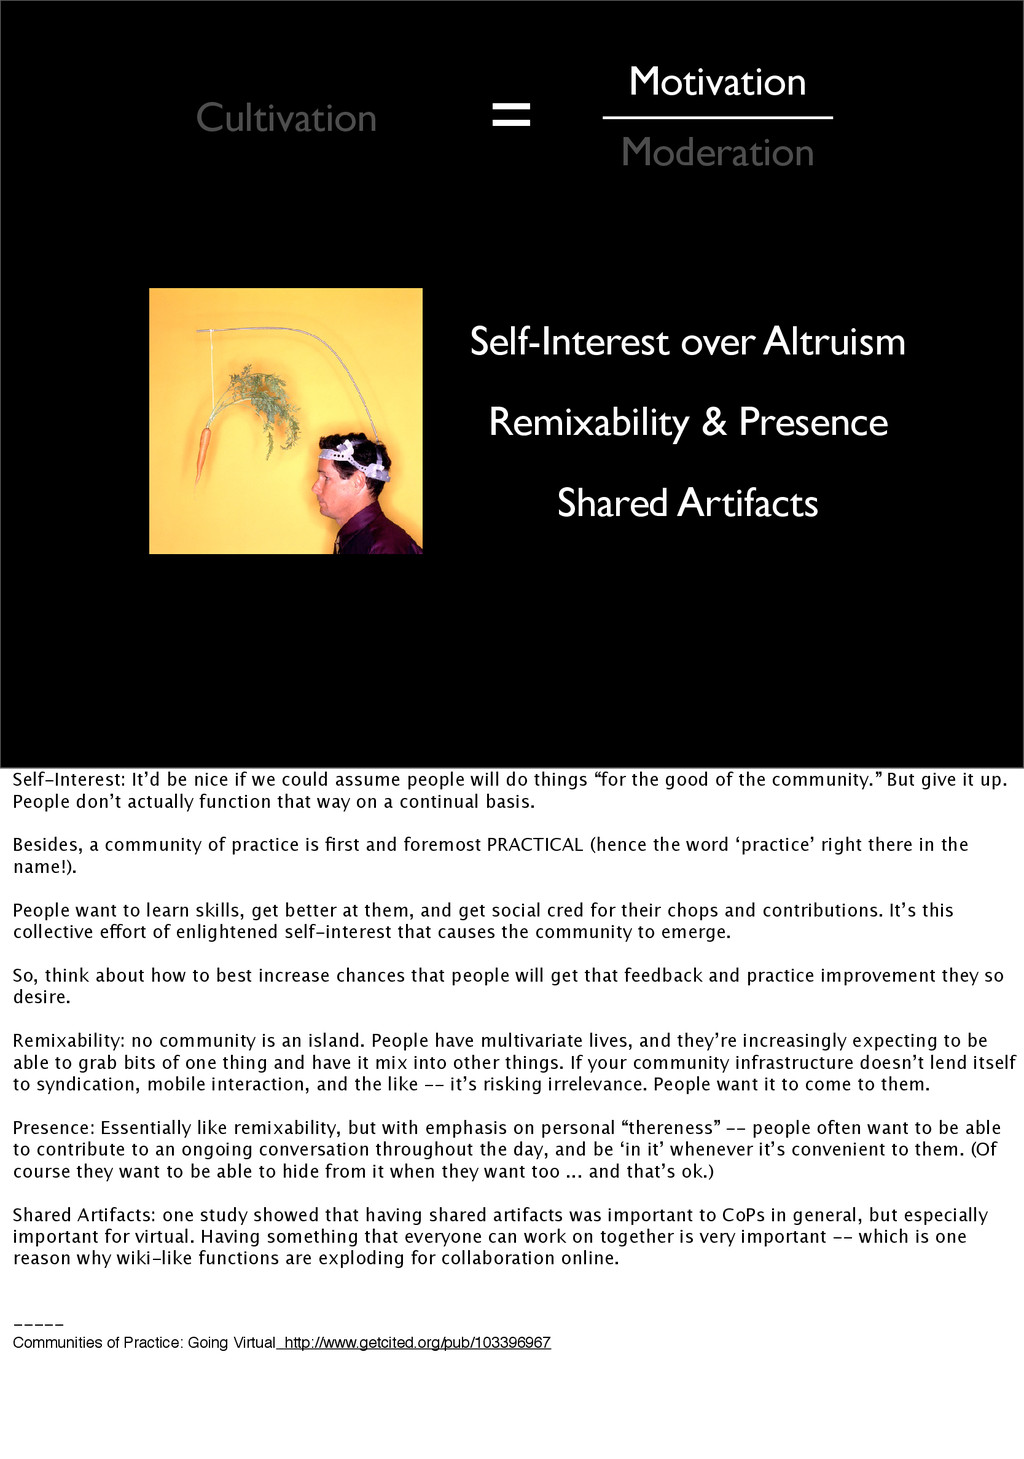 Self-Interest over Altruism Remixability & Pres...